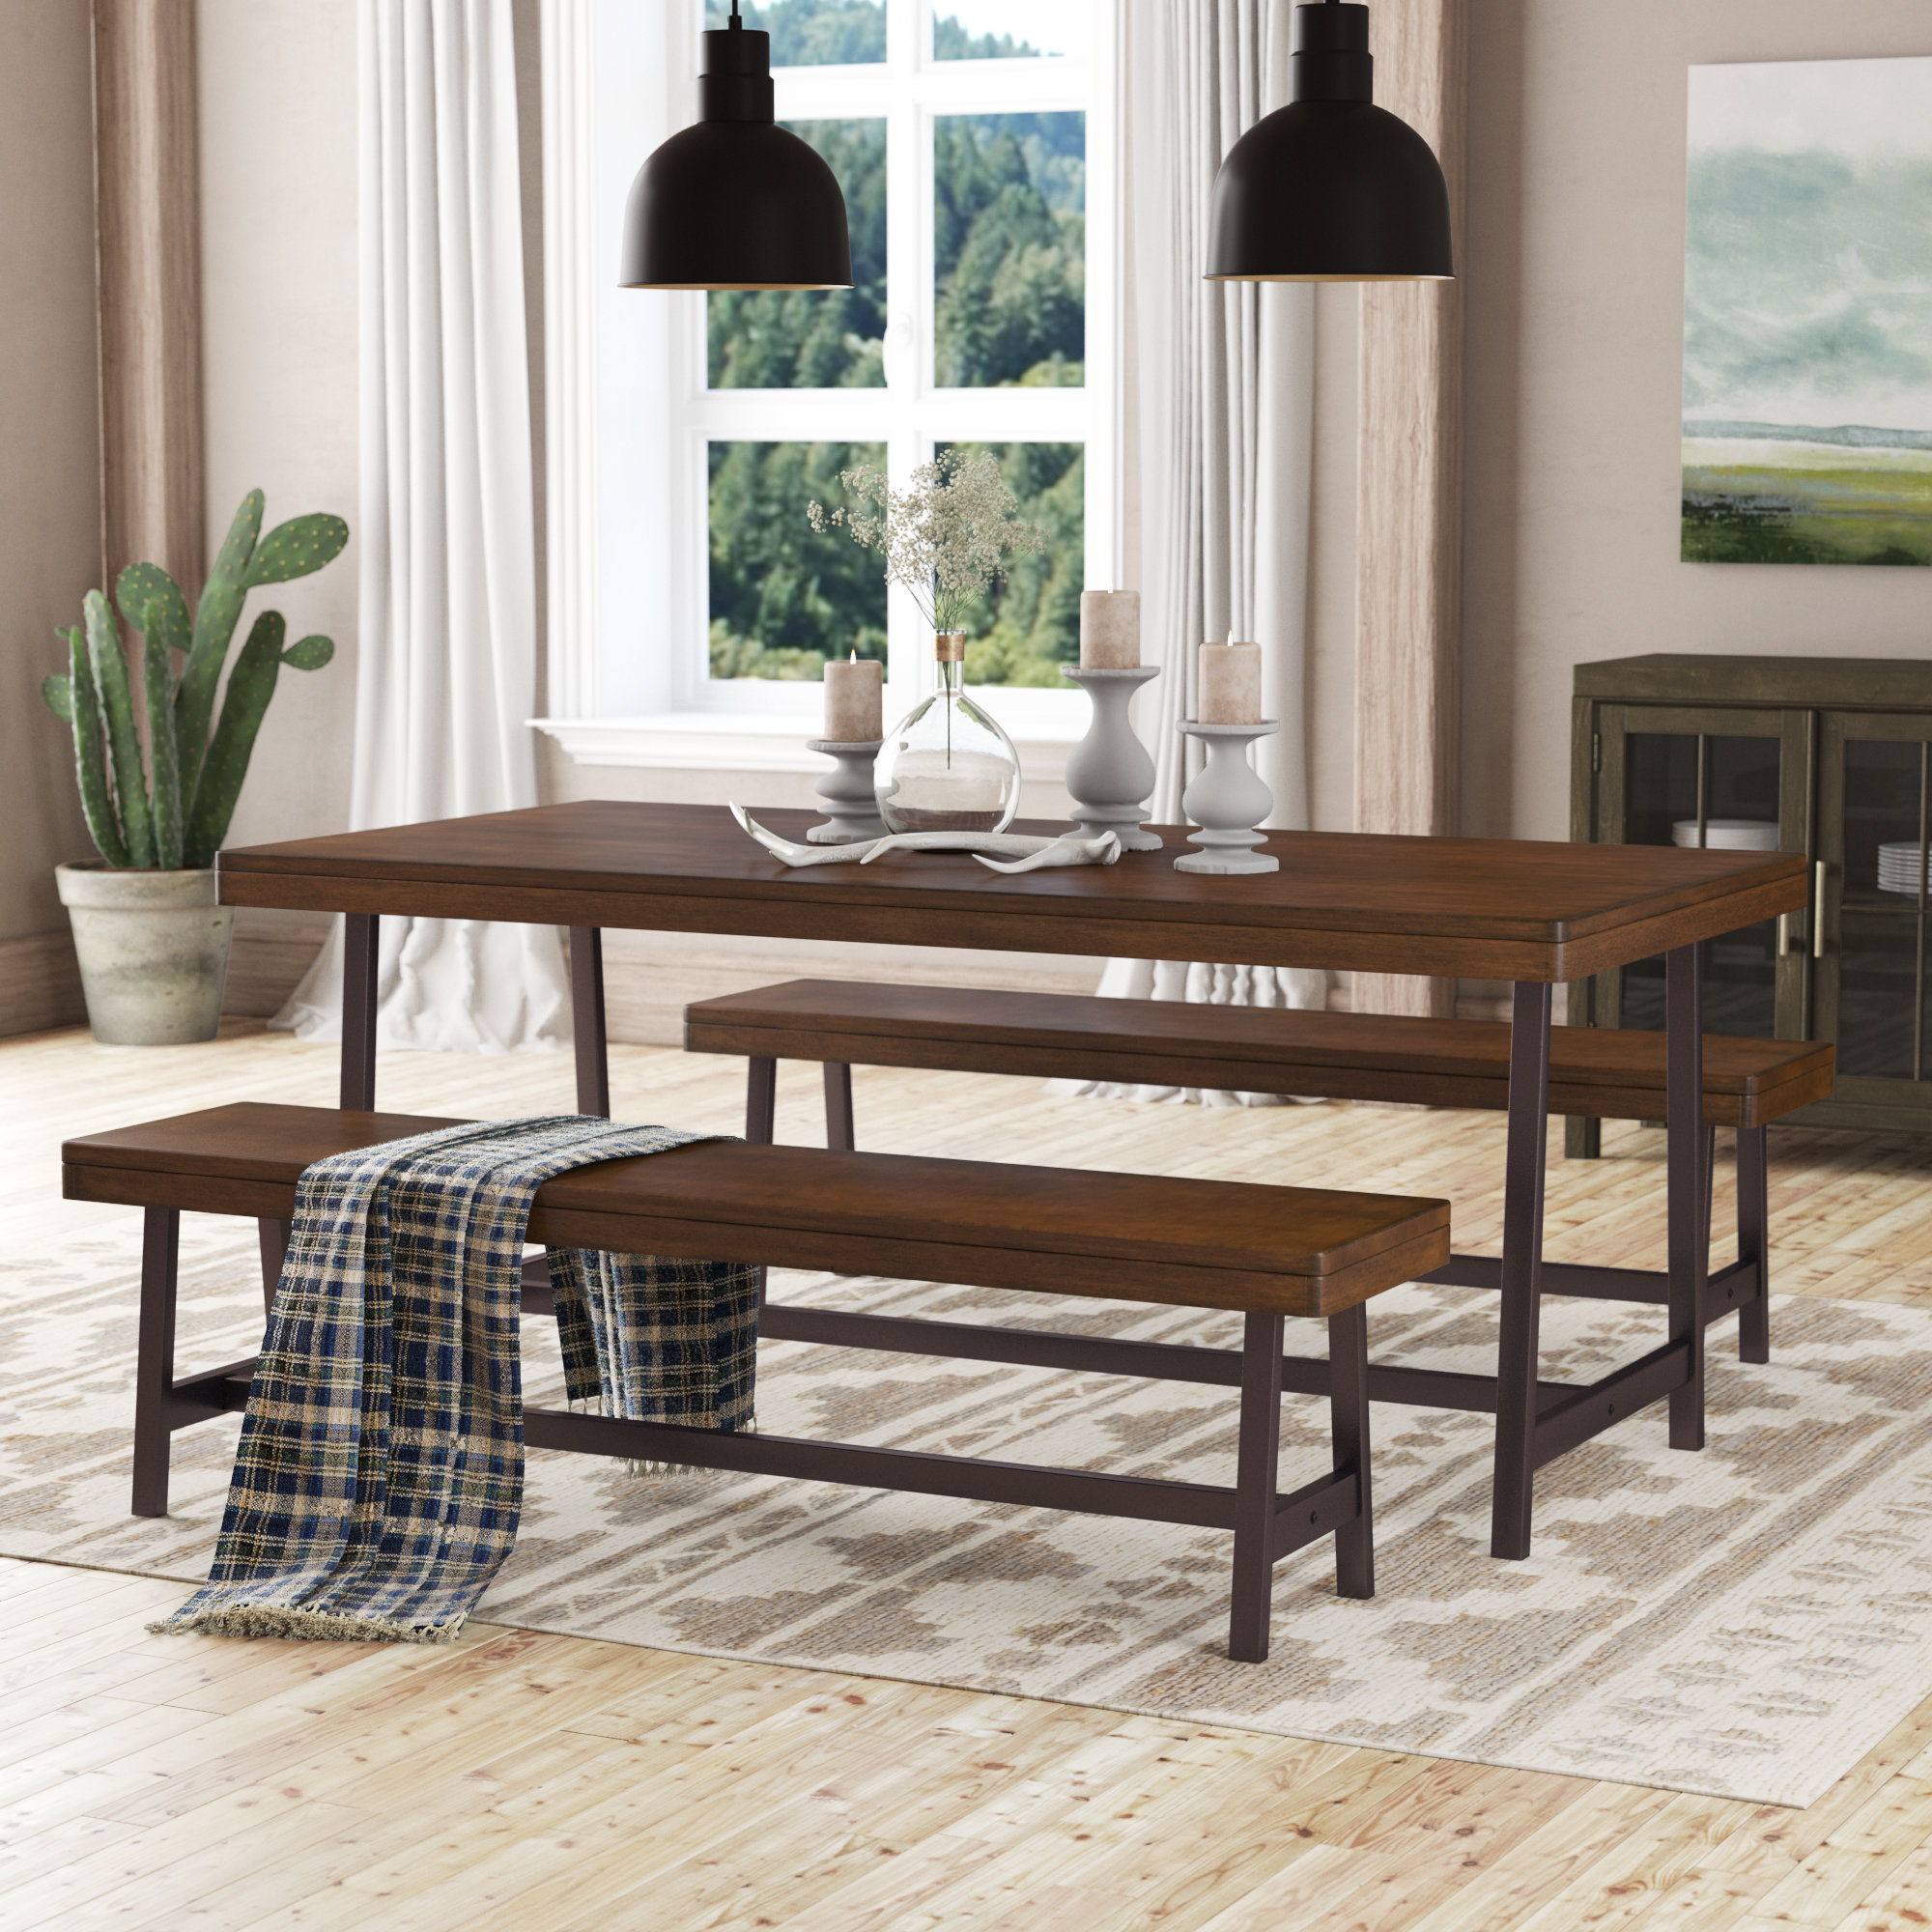 Kerley 4 Piece Dining Sets Regarding Fashionable Huntington 3 Piece Dining Set (View 9 of 20)